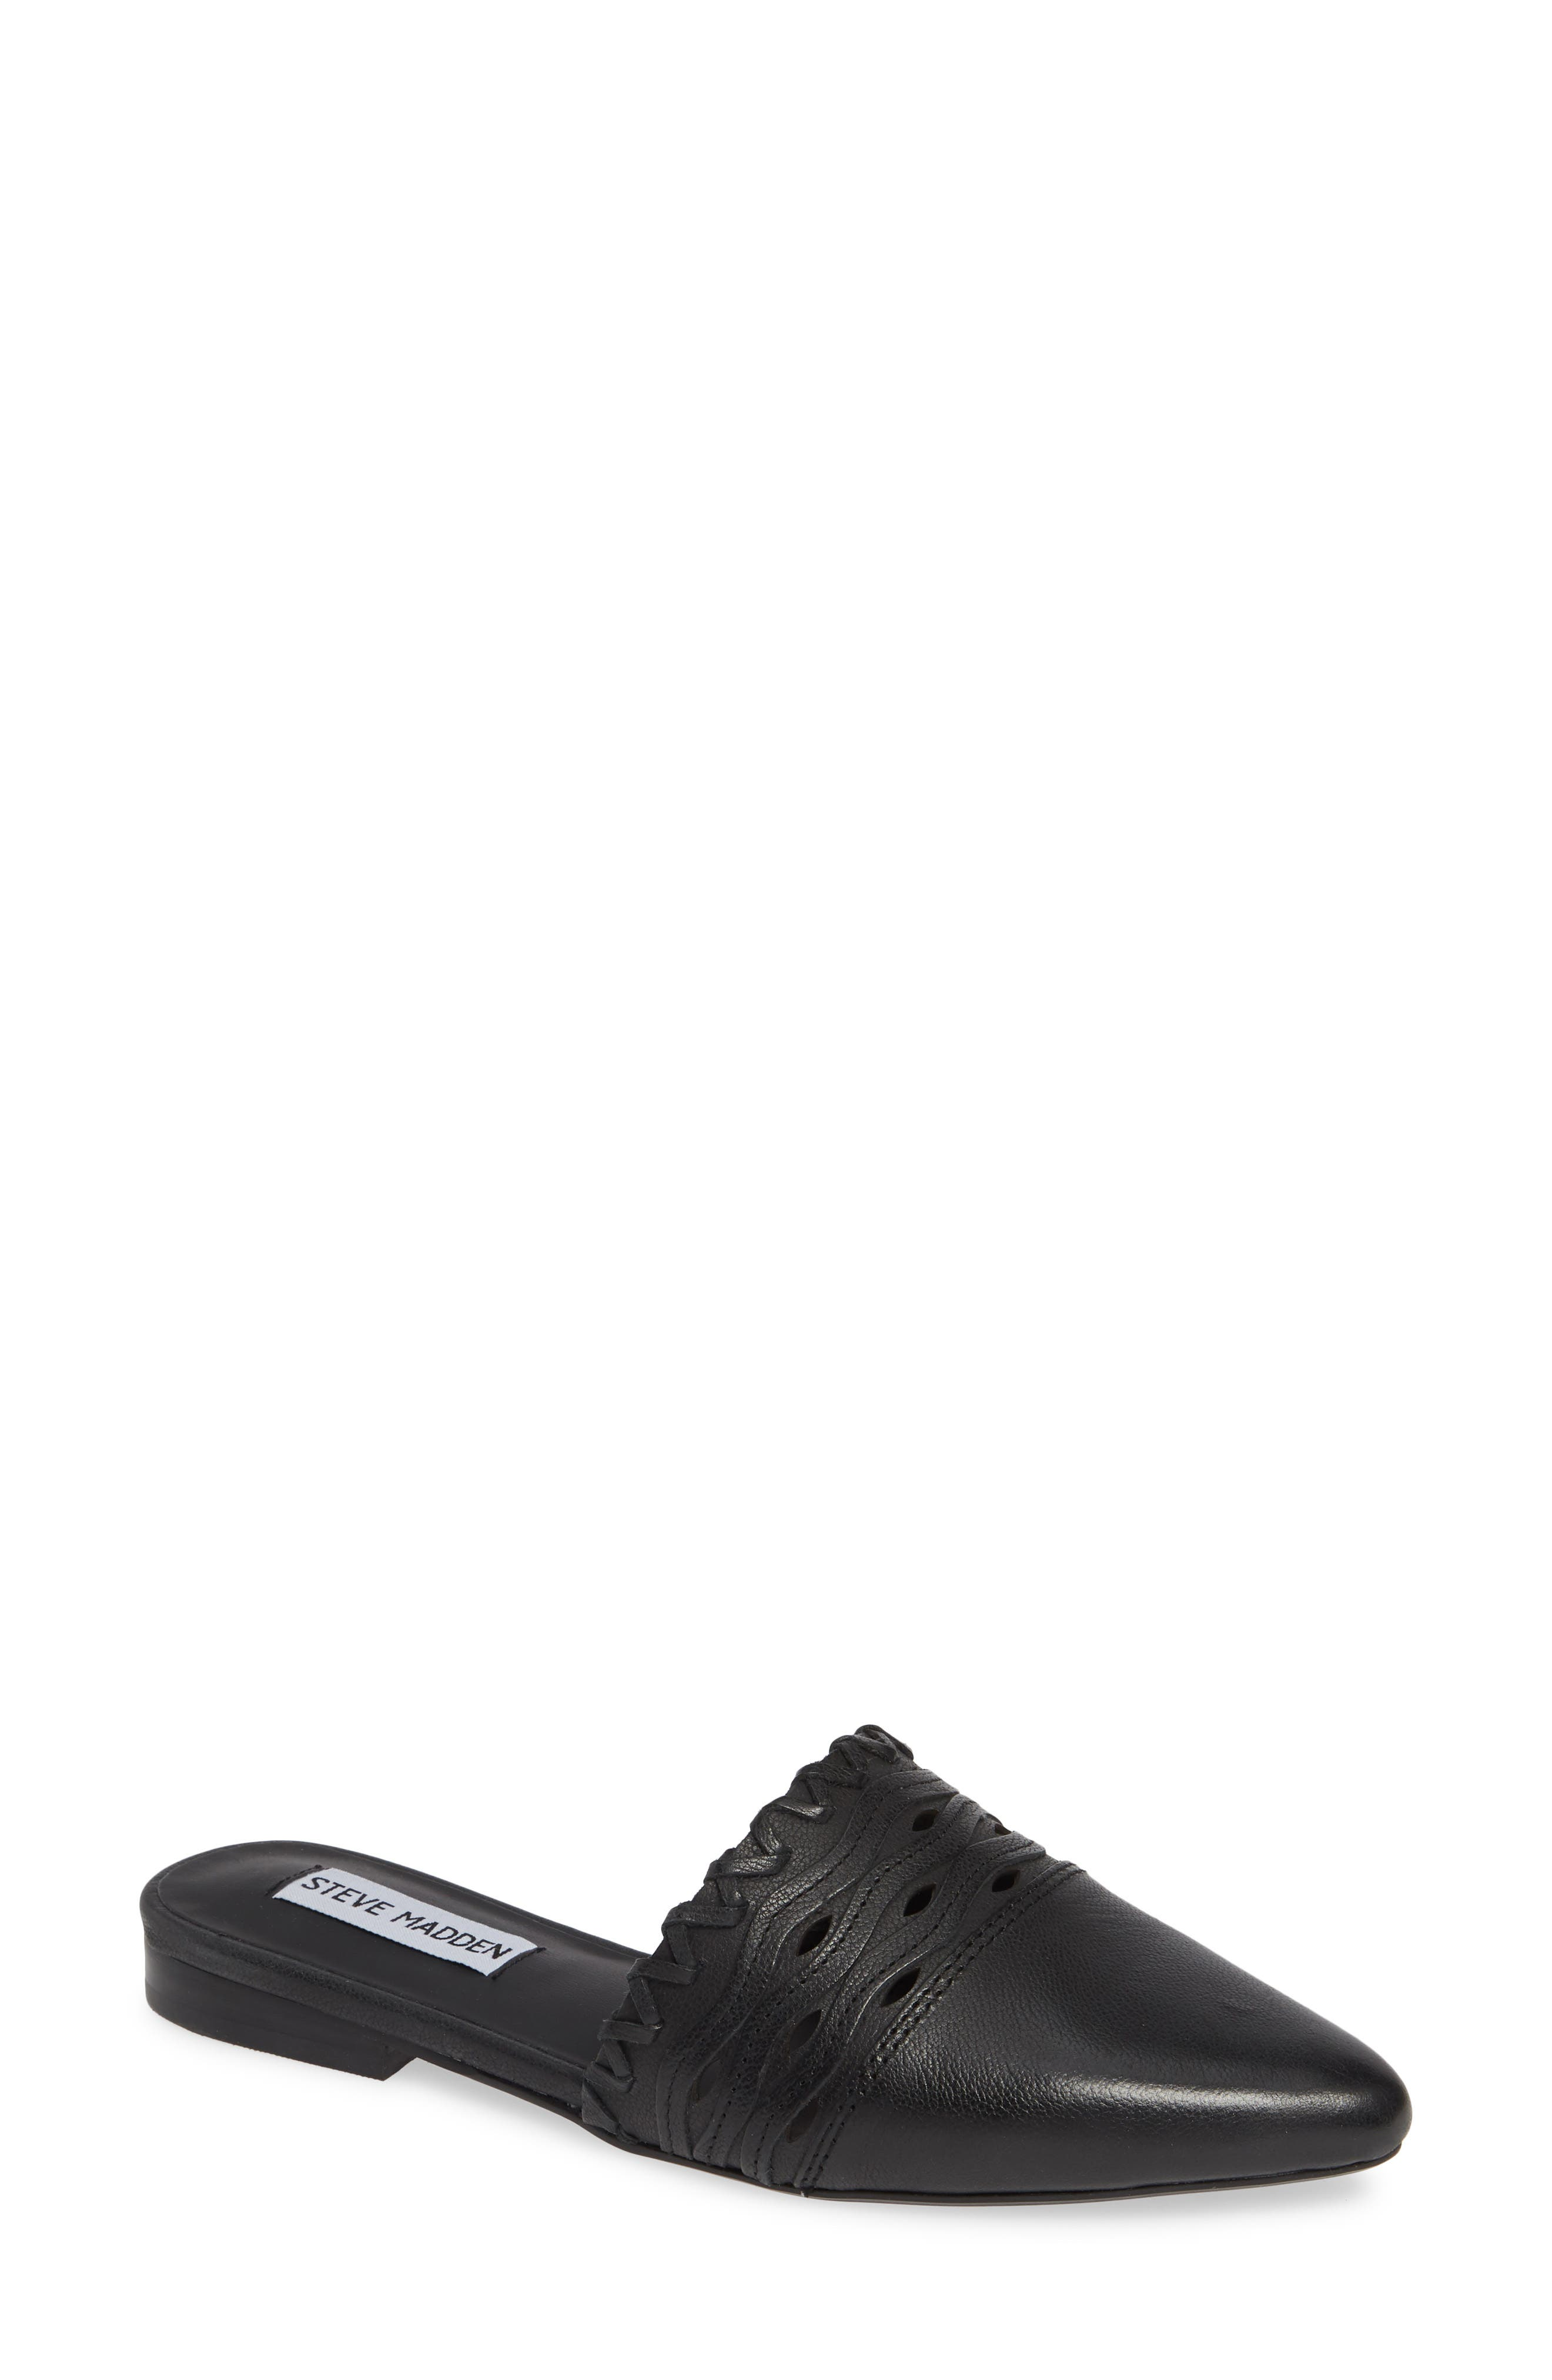 STEVE MADDEN, Timmy Mule, Main thumbnail 1, color, BLACK LEATHER